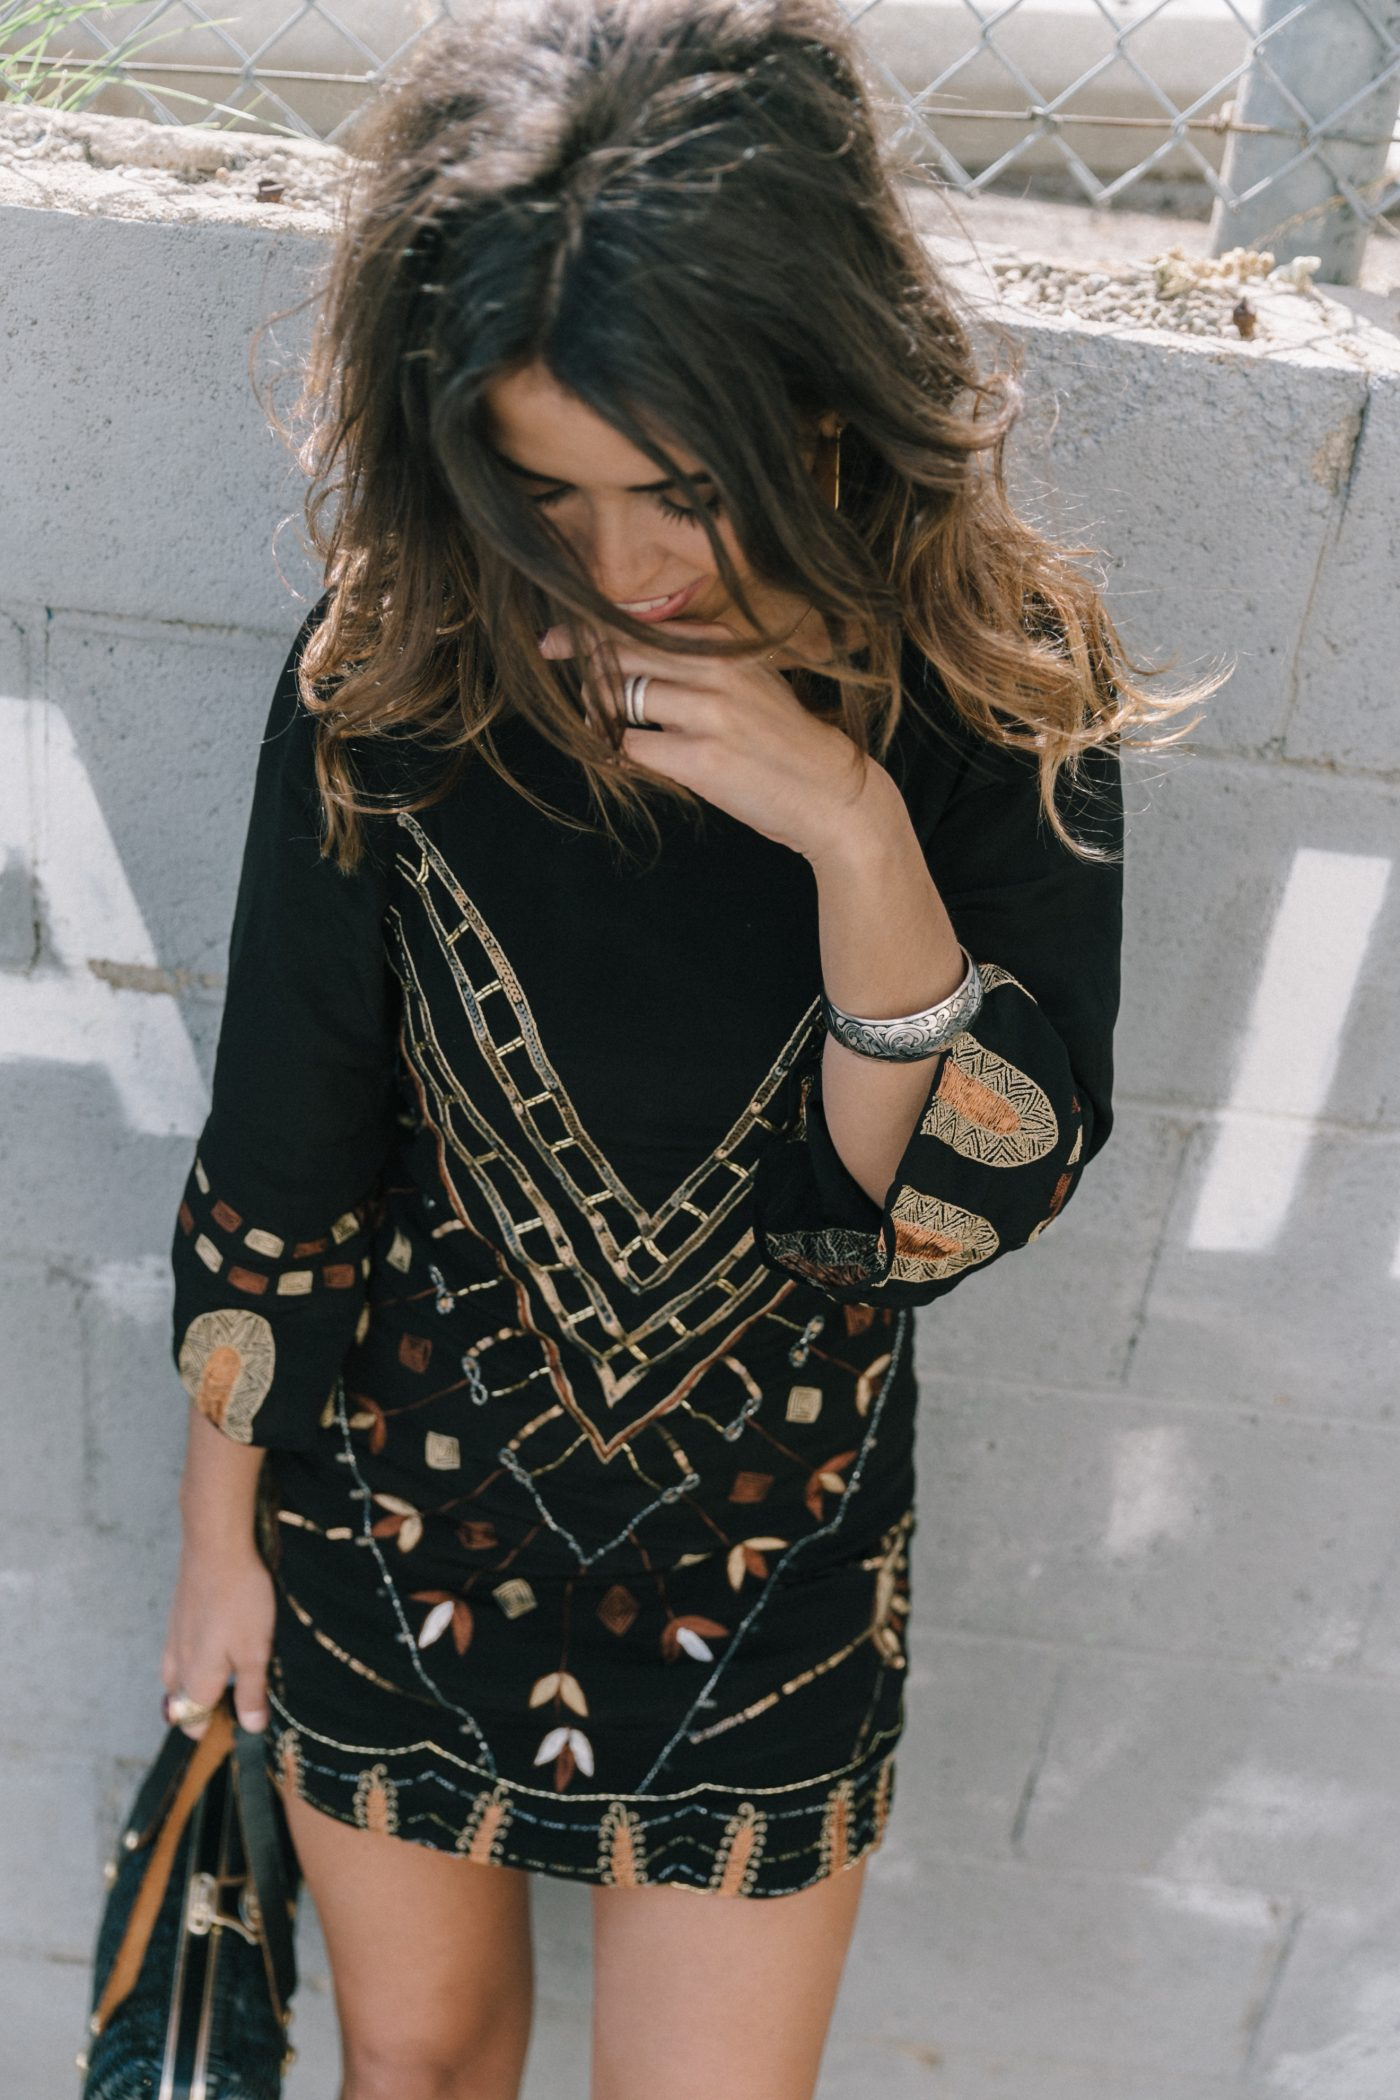 Boho_Dress-Jens_Pirate_Booty-Black_Beaded_Dress-Lace_Up_Sandals-Los_Angeles-Outfit-Collage_Vintage-71